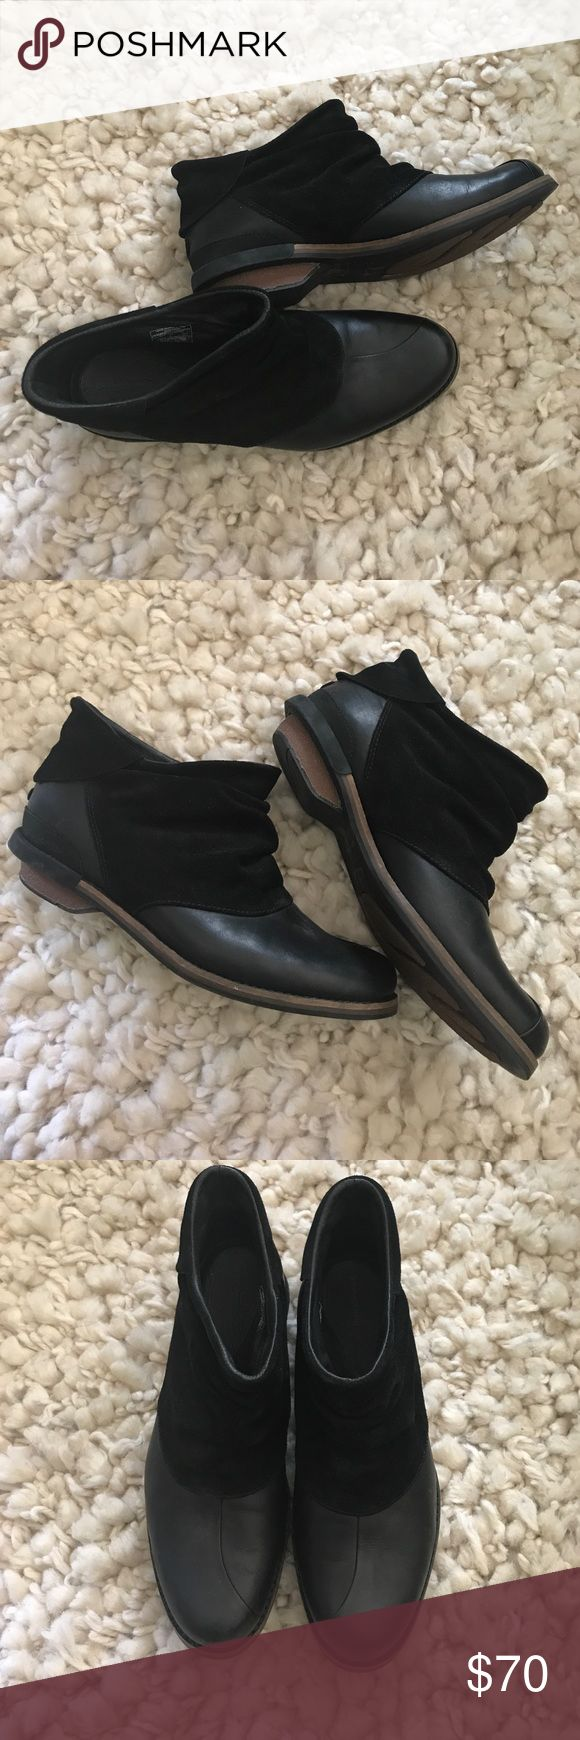 Patagonia Addie black booties 7.5 Gorgeous Addie booties by Patagonia. Soft leather and suede - goes well with anything! Worn once, like new! Size 7.5 Patagonia Shoes